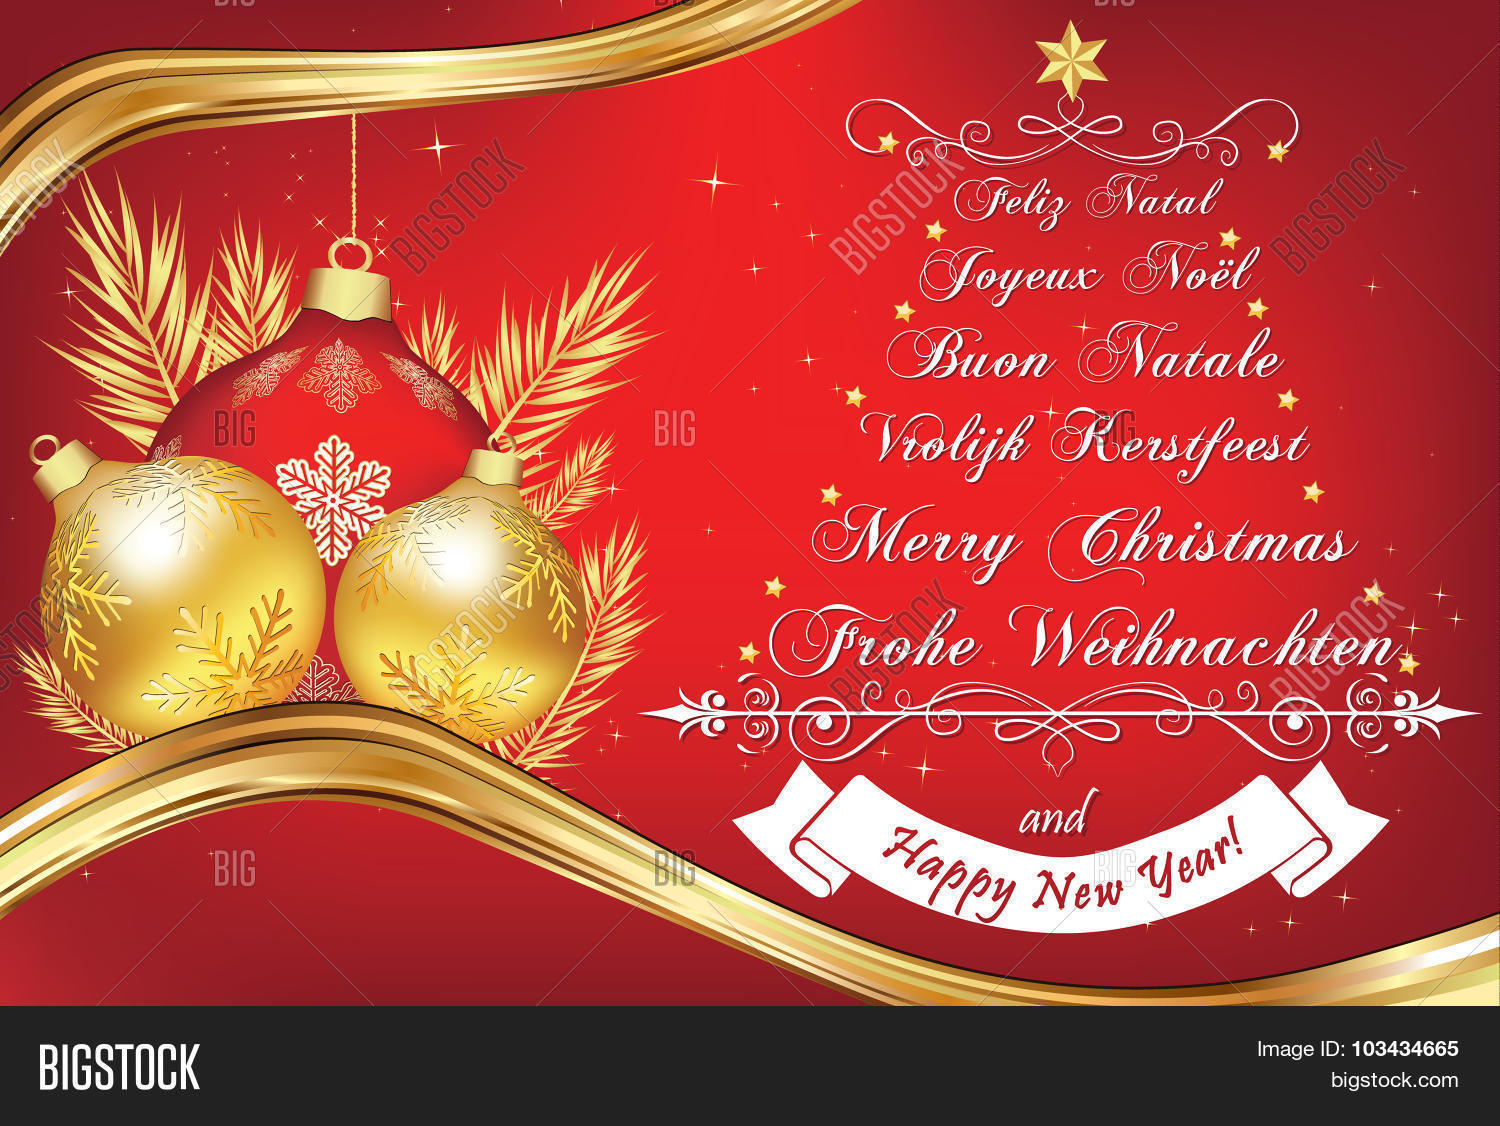 Christmas wishes many languages vector photo bigstock christmas wishes in many languages kristyandbryce Gallery